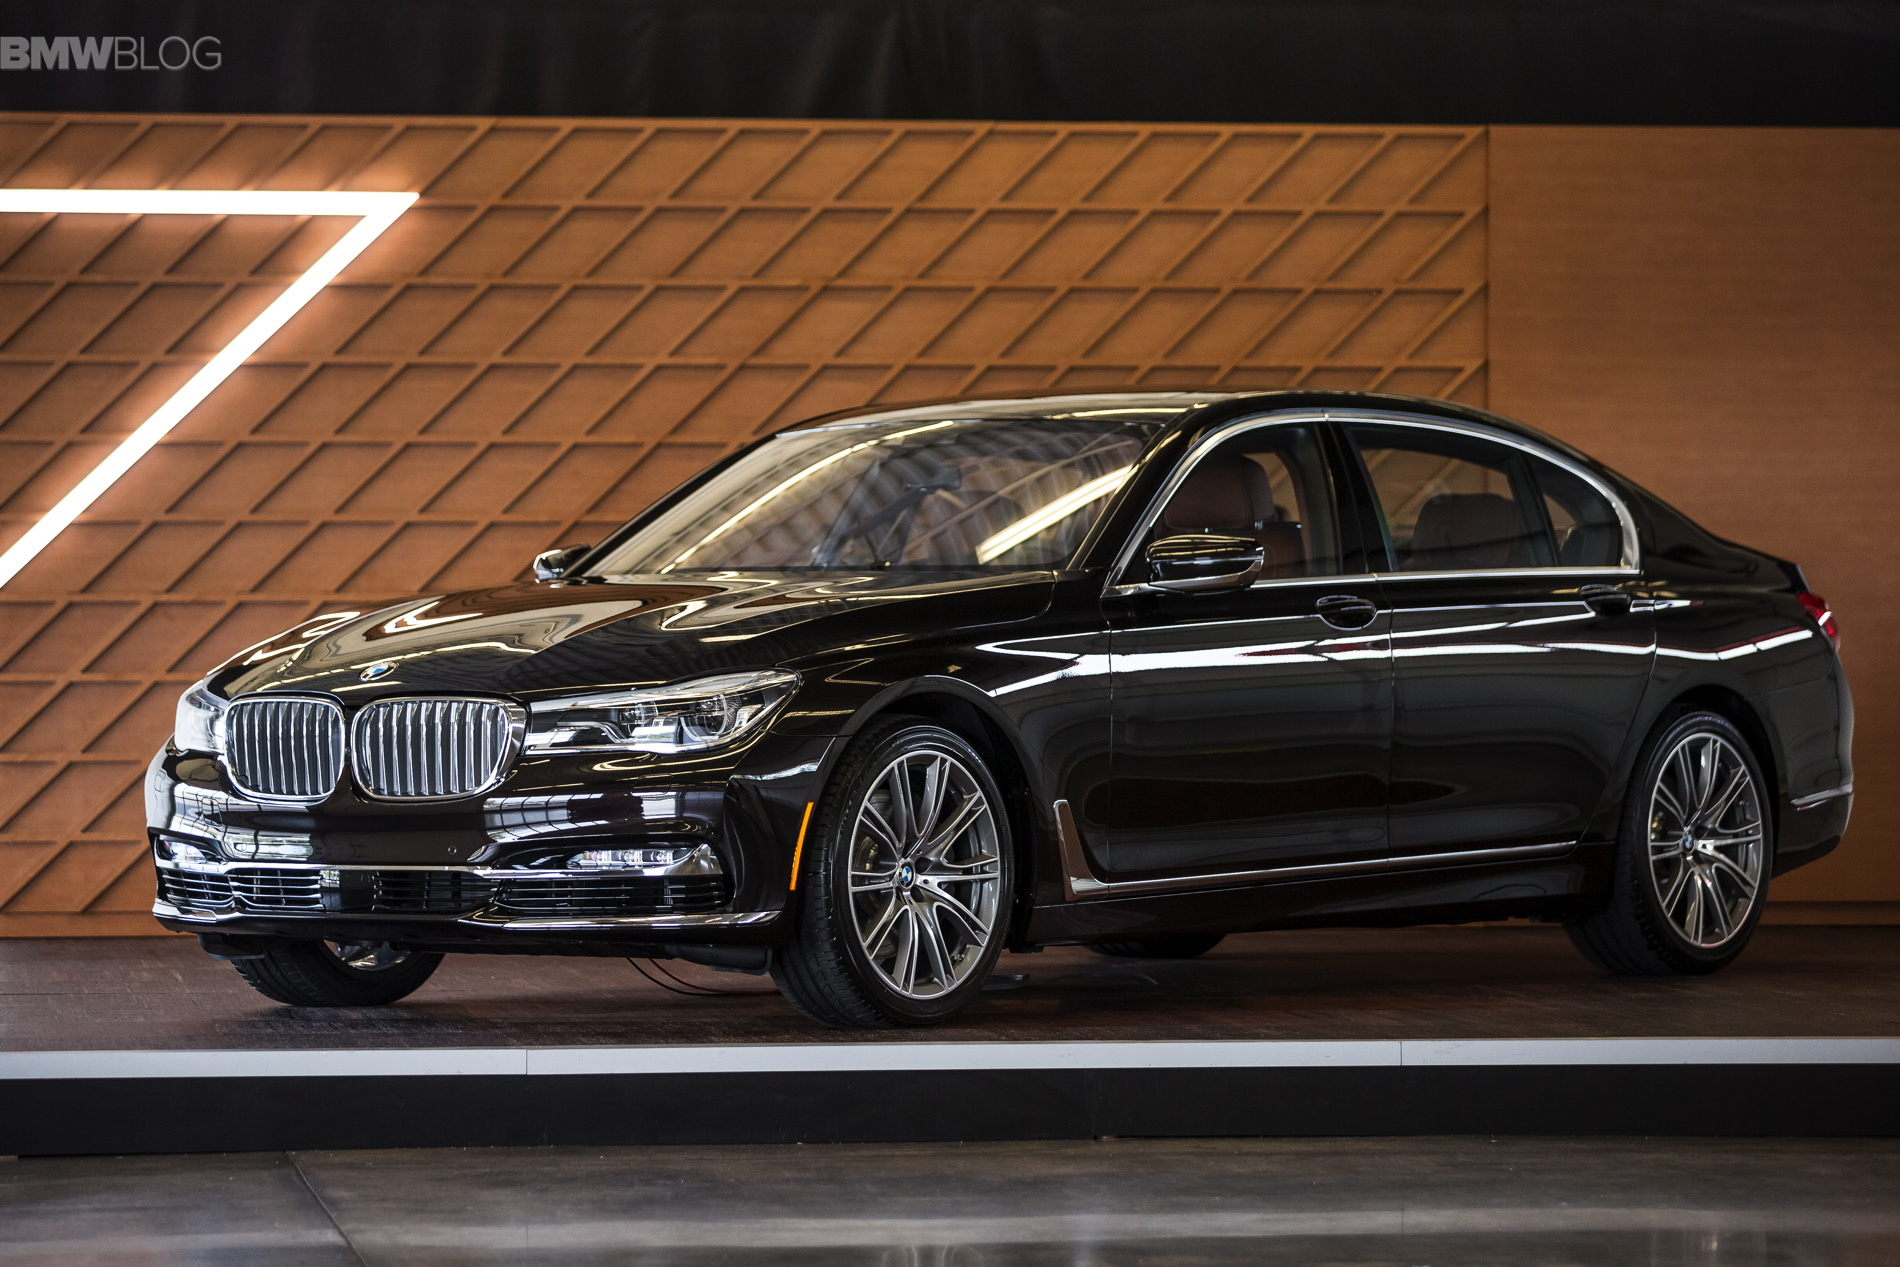 New Bmw 7 Series Design Explained By Karim Habib